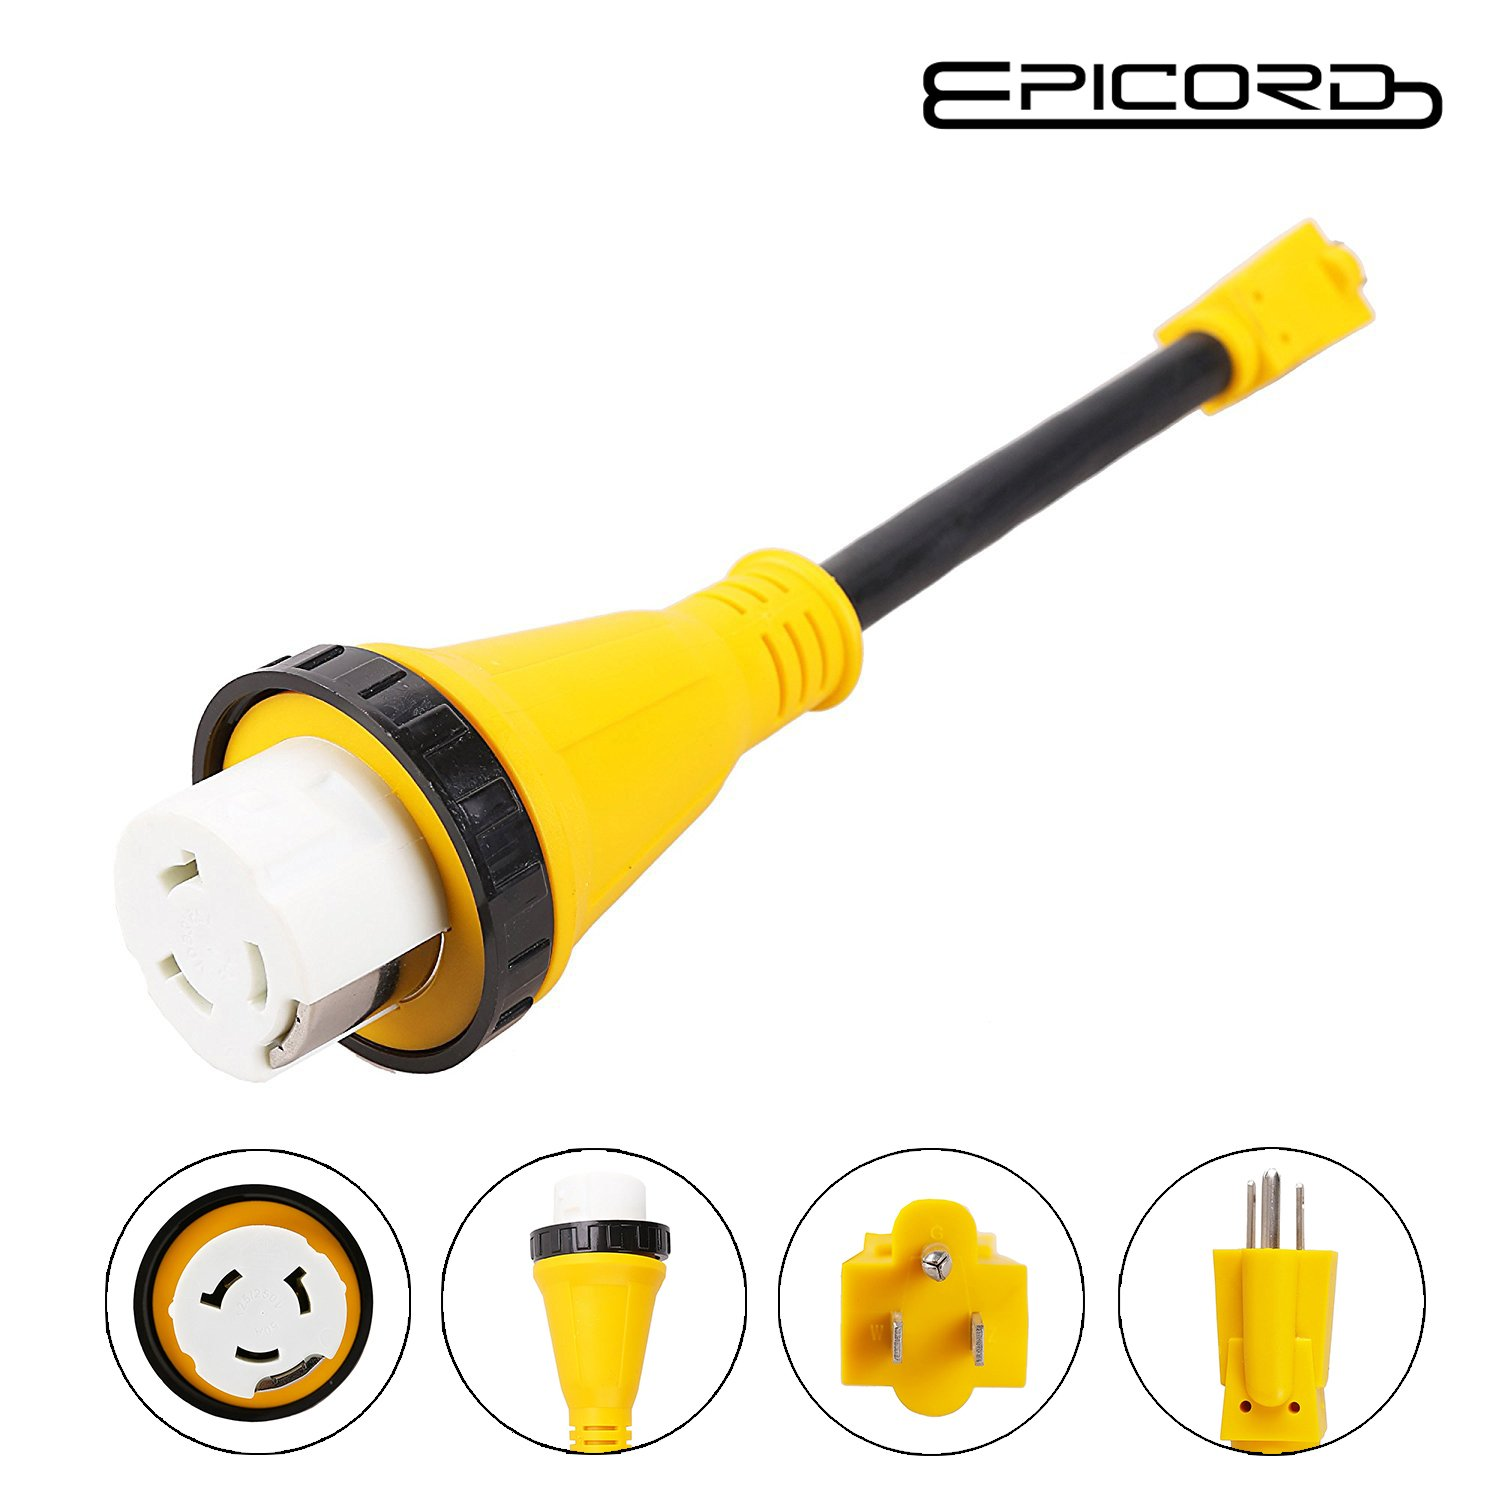 Epicord RV Camper Power Adapter Cords 15amp Male Plug to 50amp Female Adapter RV Dogbone Electrical Adapter,12 inch 10/3 AWG